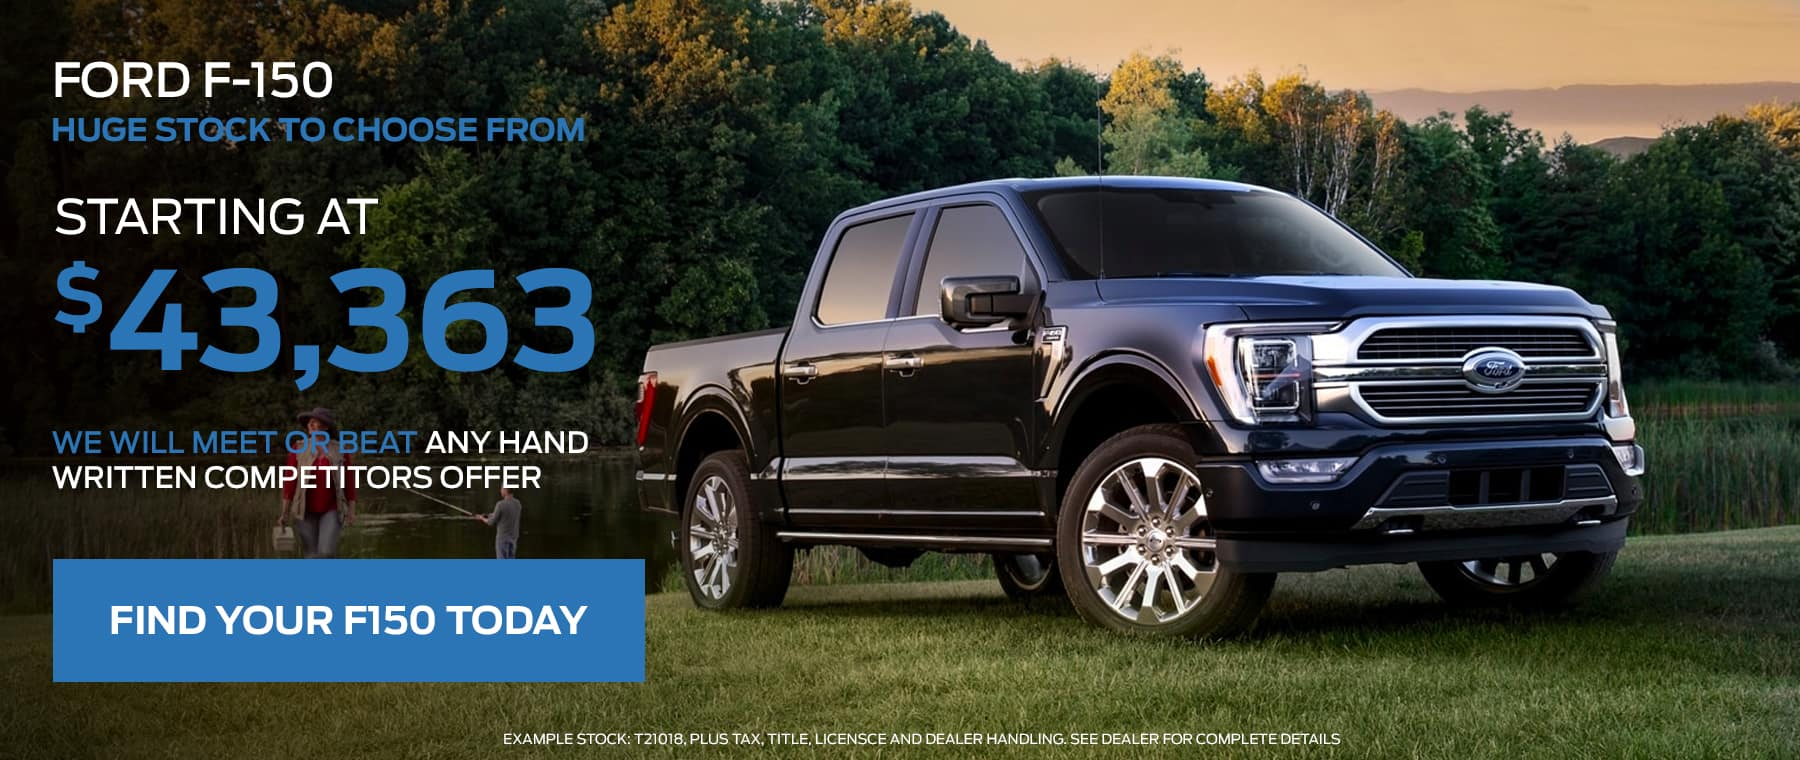 Ford F 150 -Huge stock to choose from, Starting at $43,363